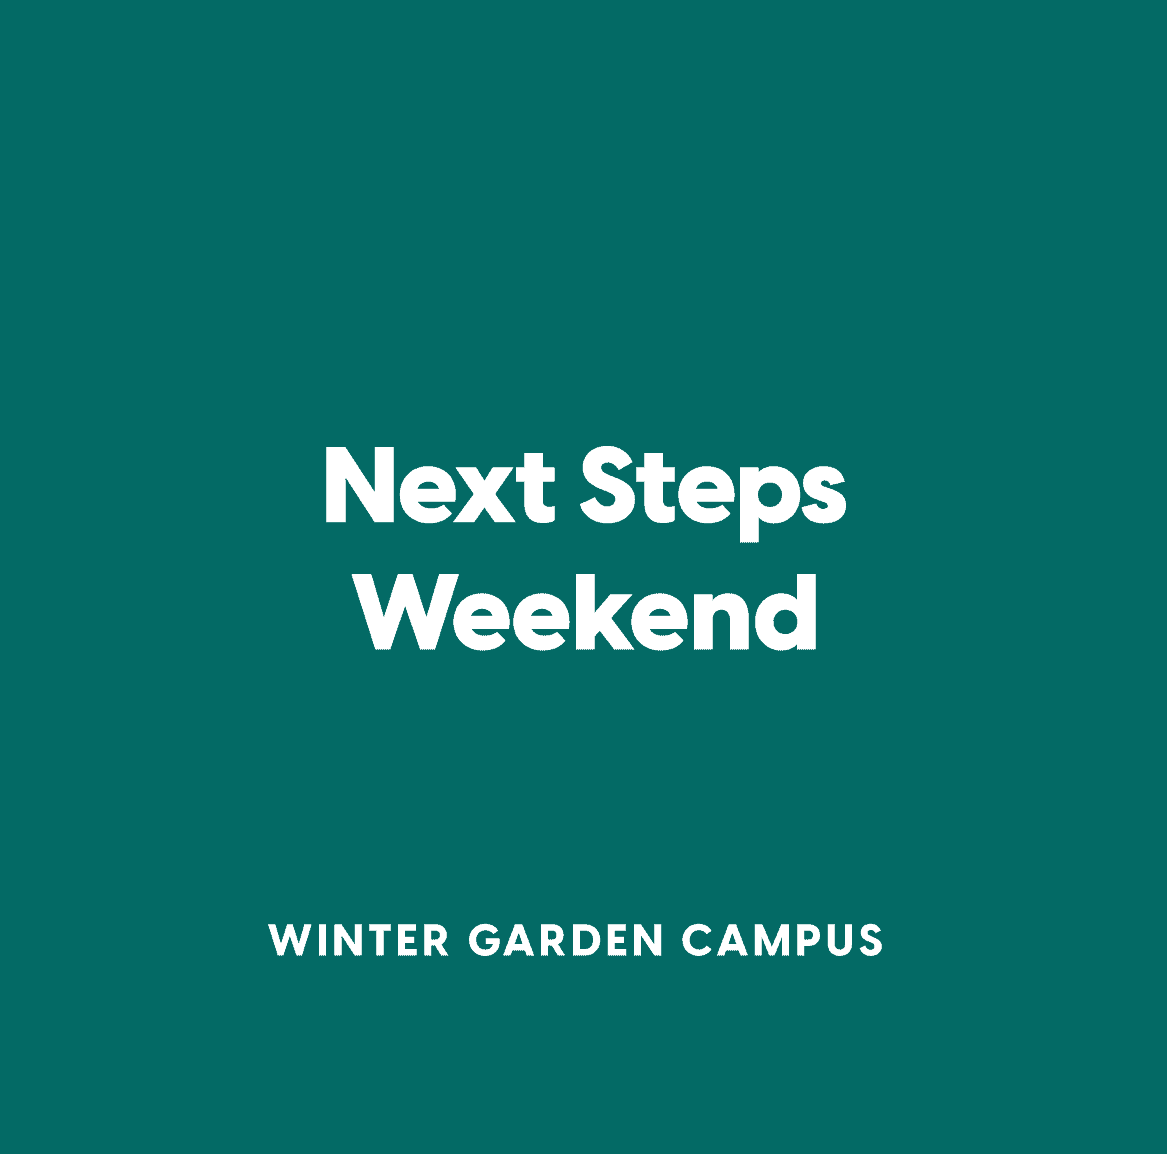 Next Steps Weekend Winter Garden